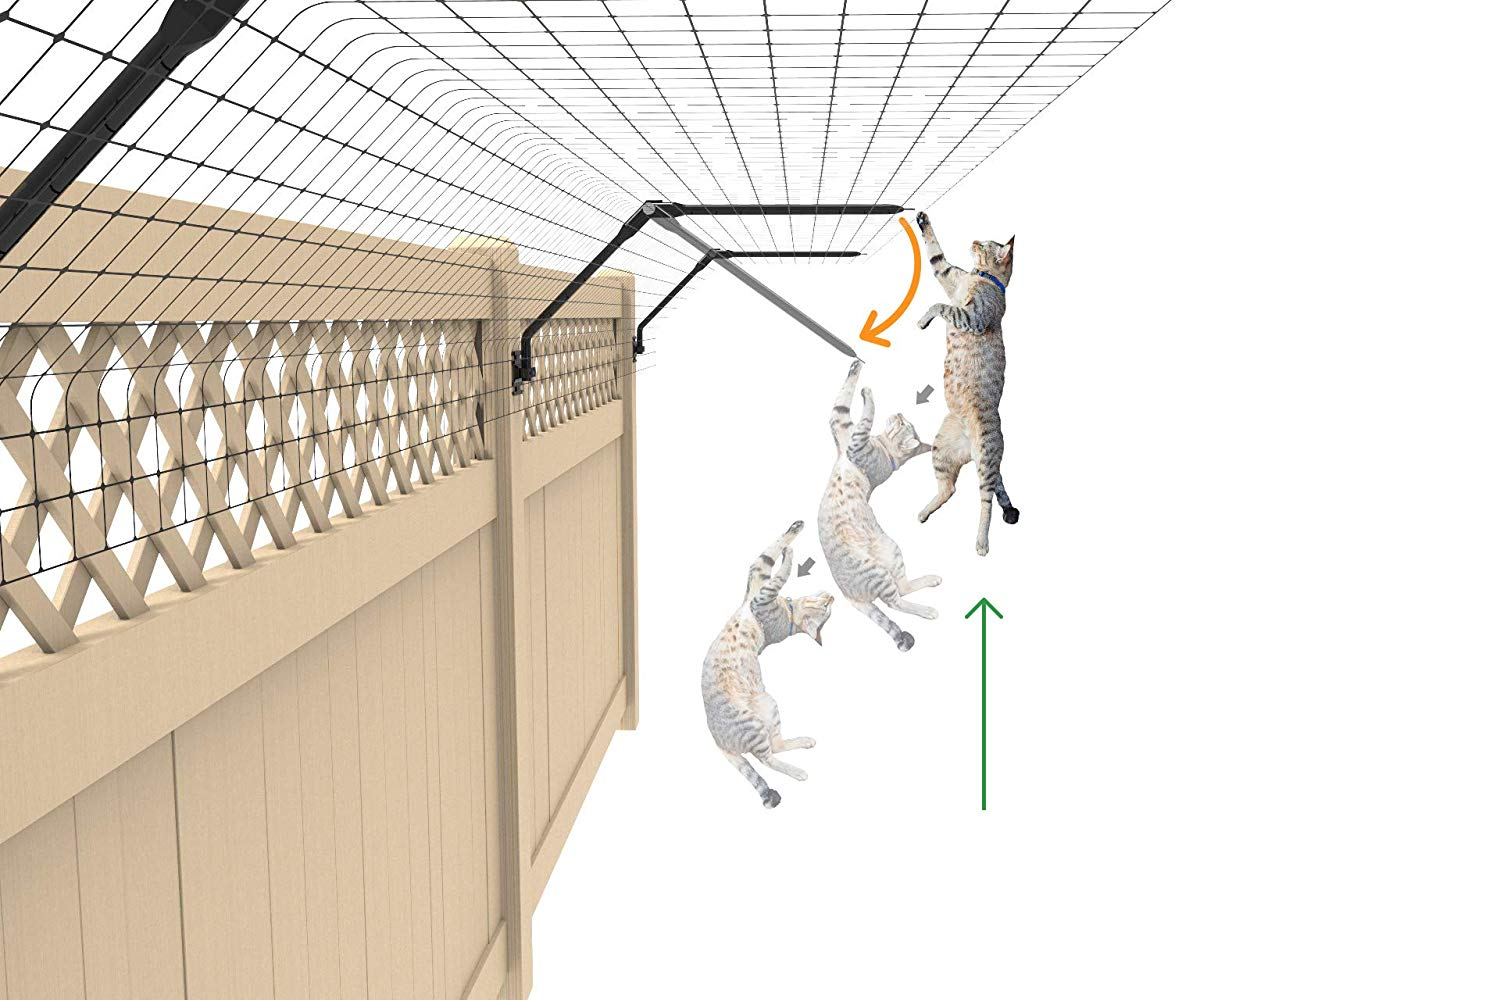 Purrfect Fence - Cat Proof Fence Topper